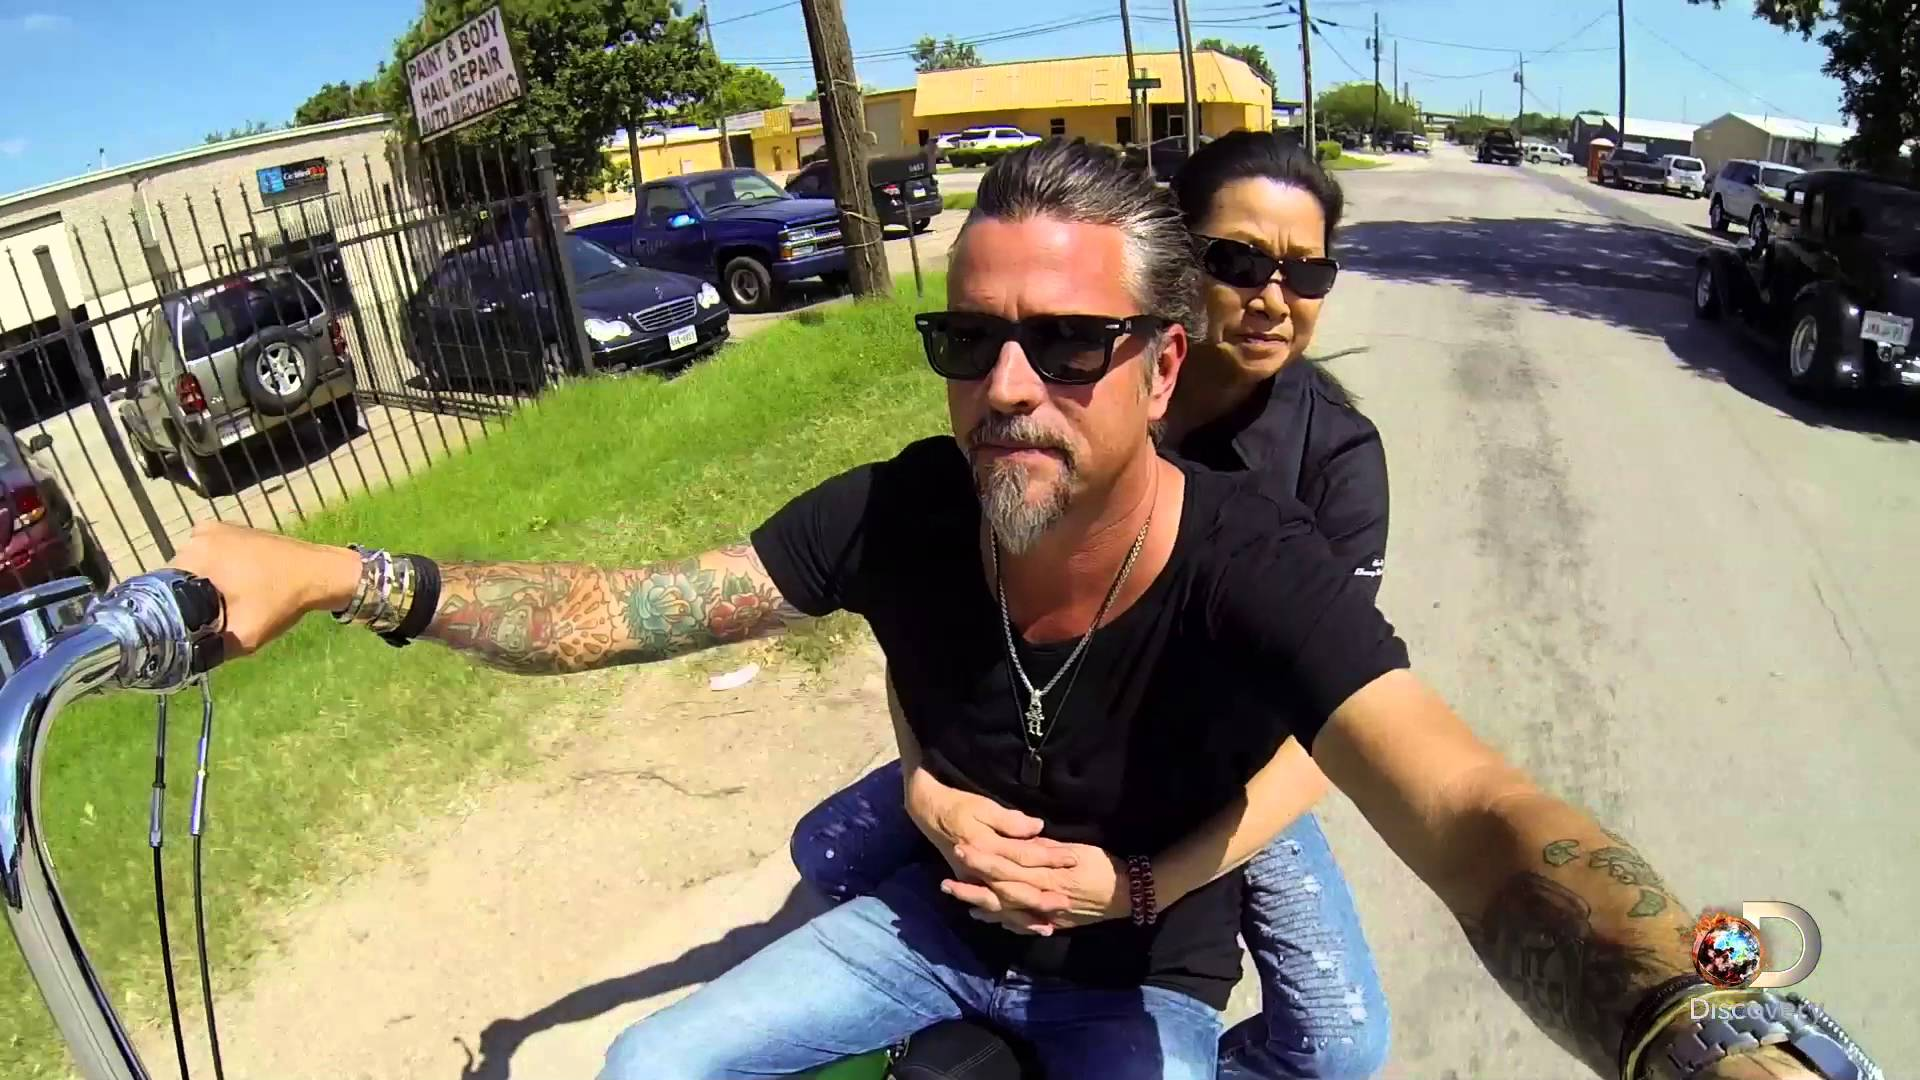 gas monkey garage 39 s richard rawlings takes his friend sue for the harley ride of her life. Black Bedroom Furniture Sets. Home Design Ideas